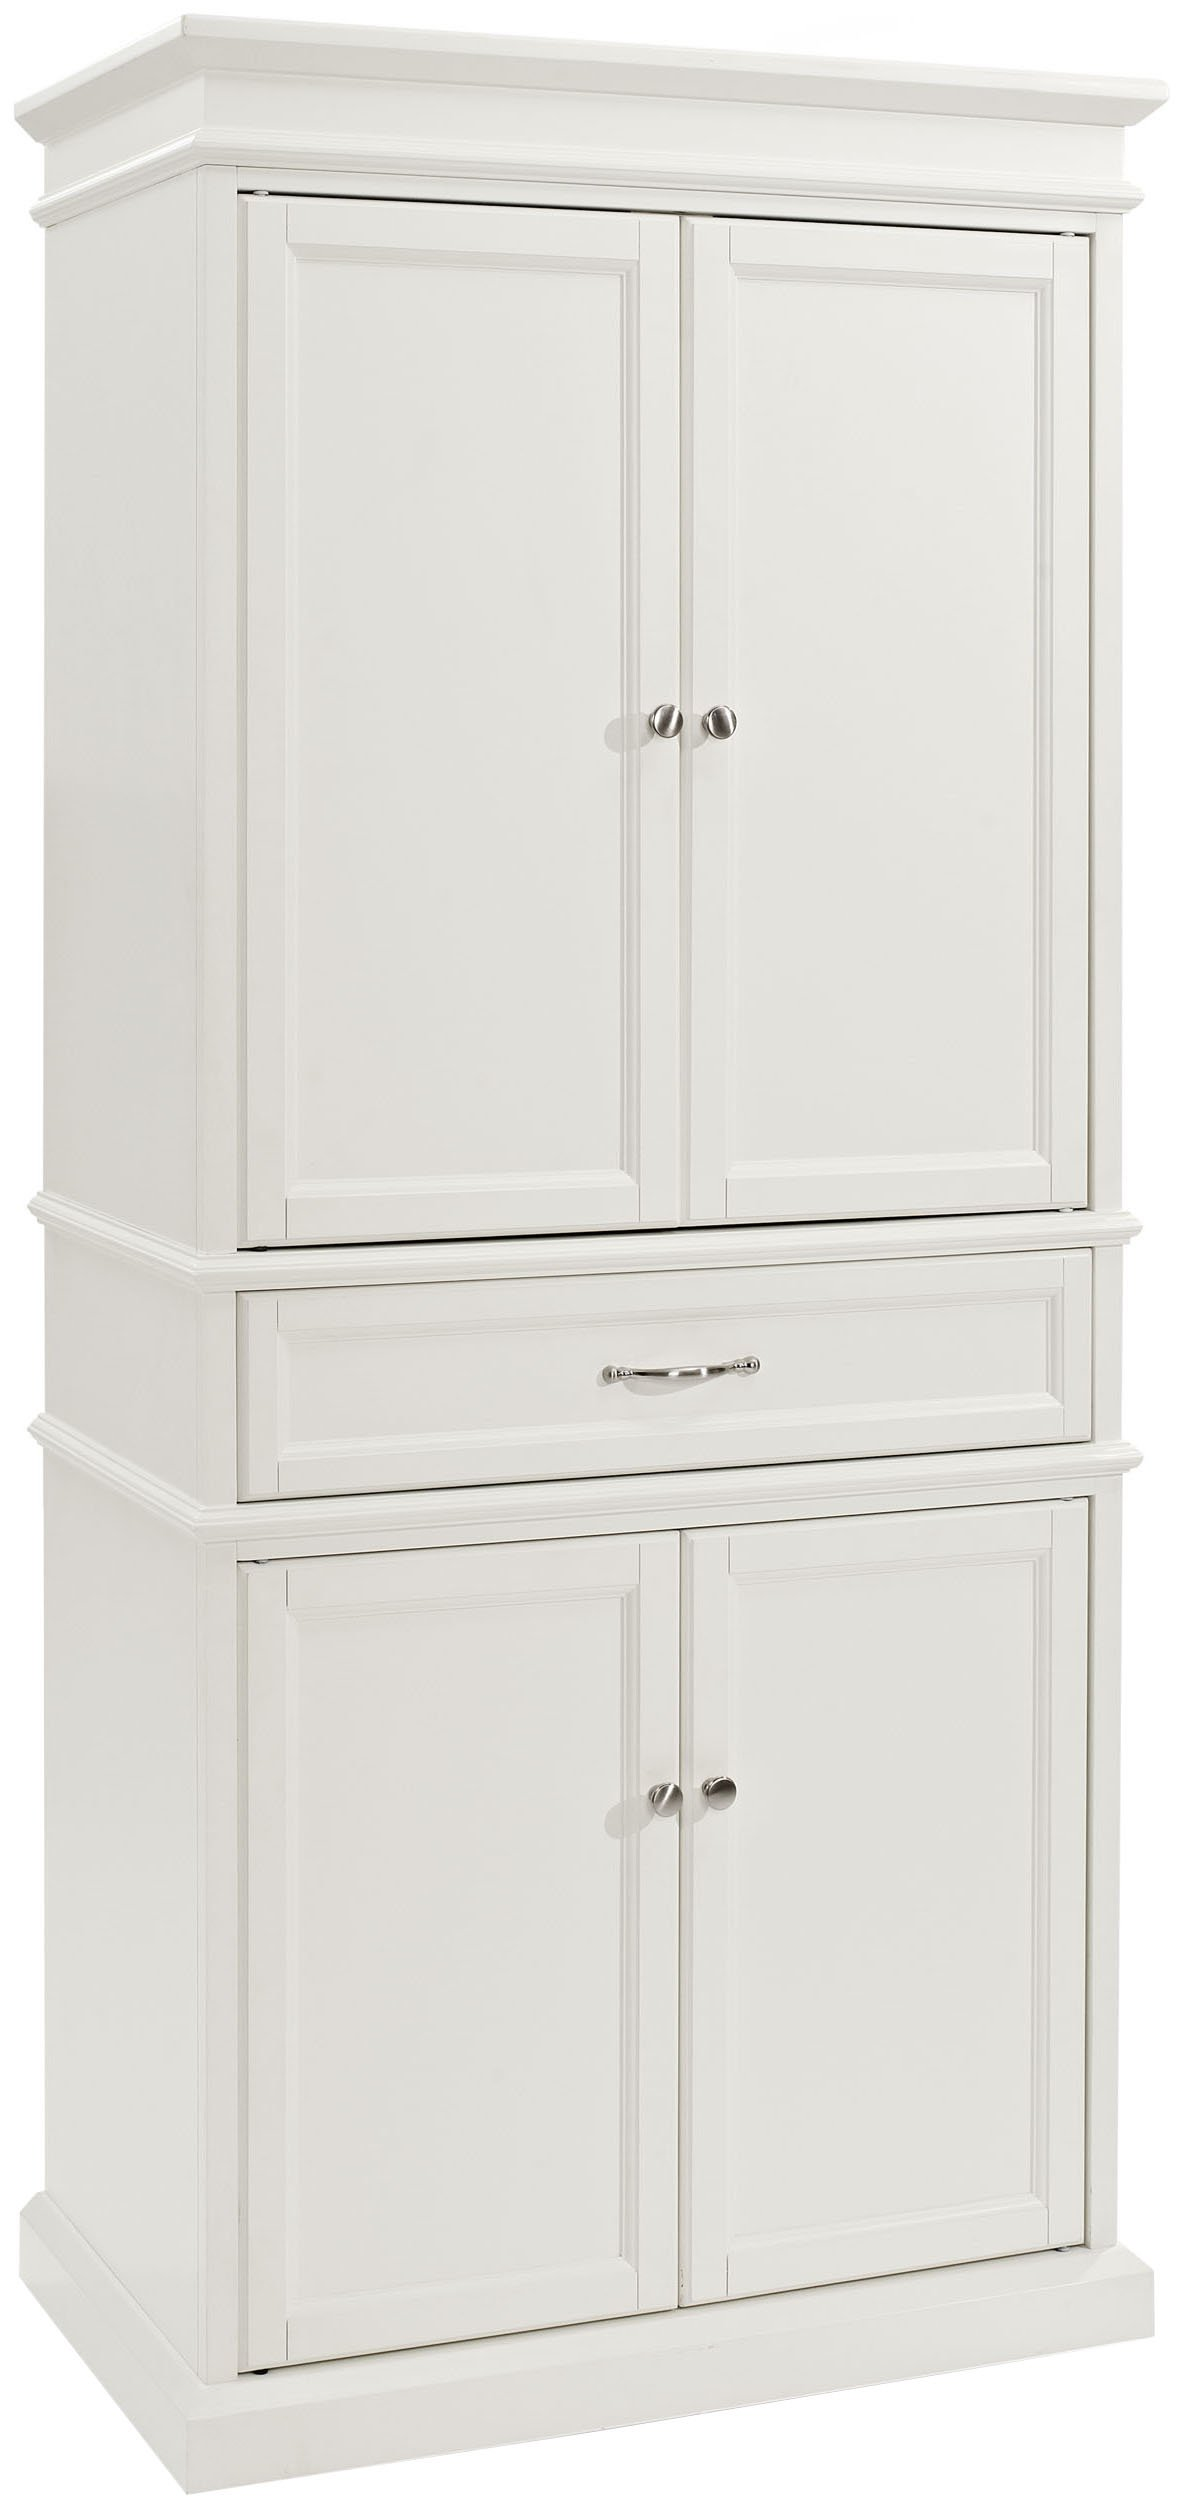 Crosley Furniture Parsons Pantry Cabinet - White